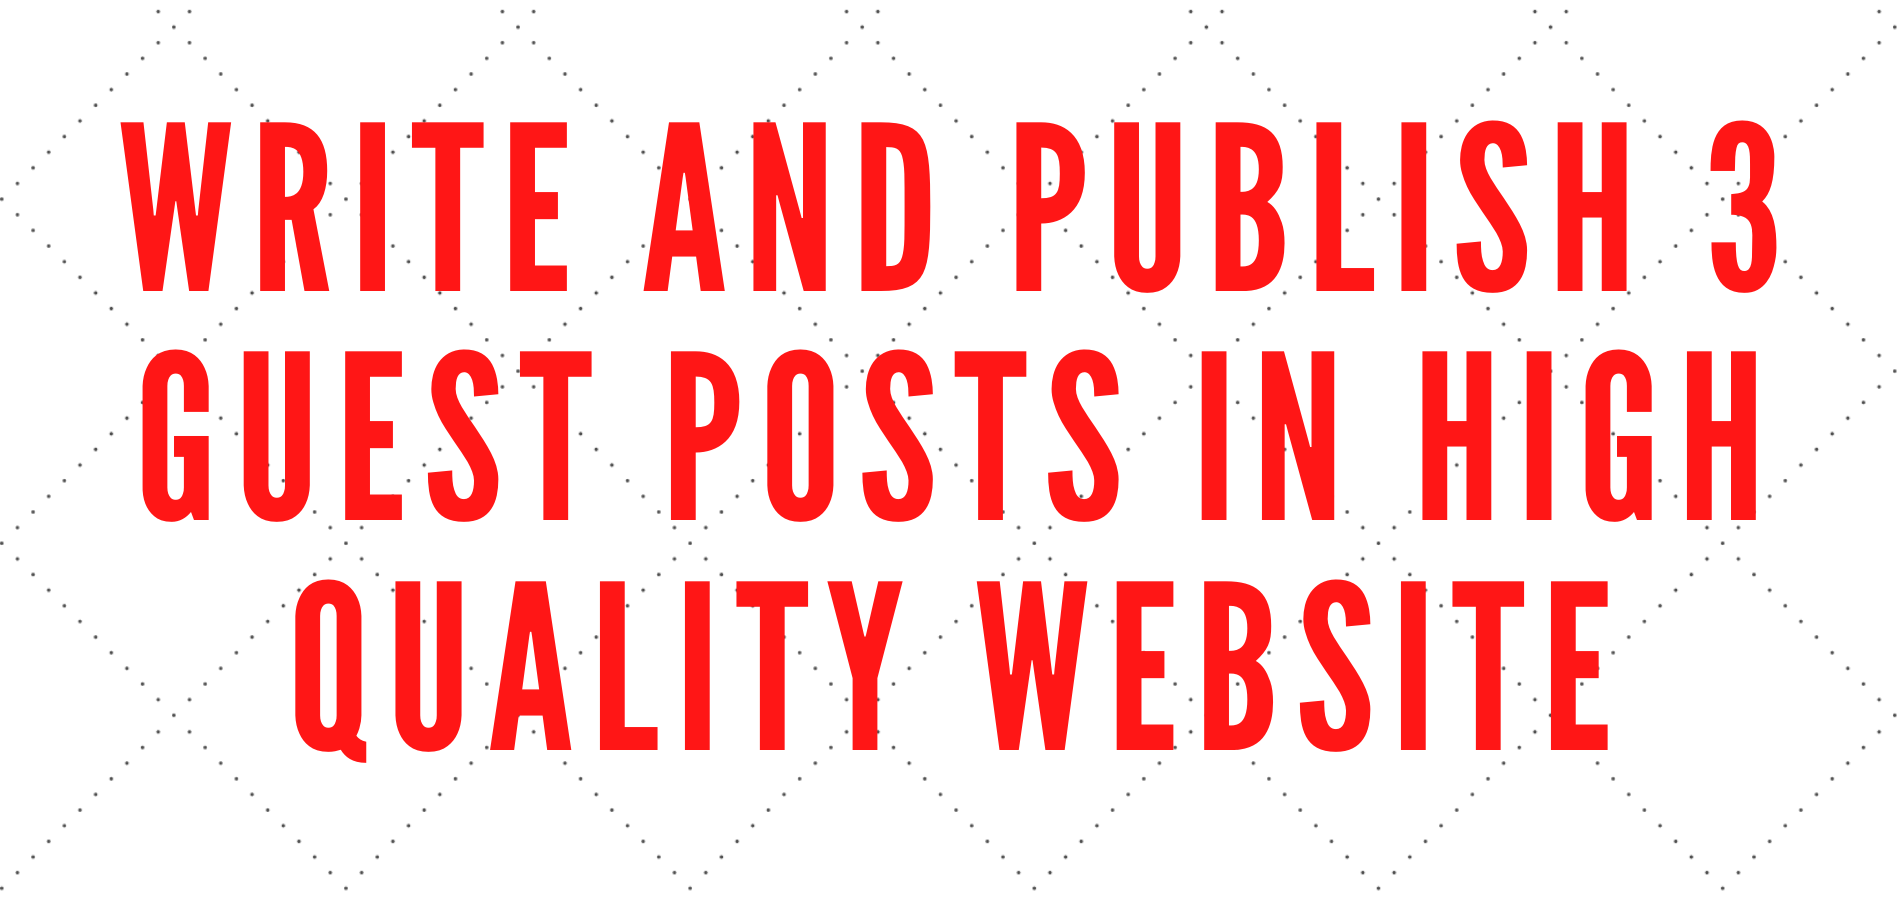 write and publish 3 guest posts in high quality website